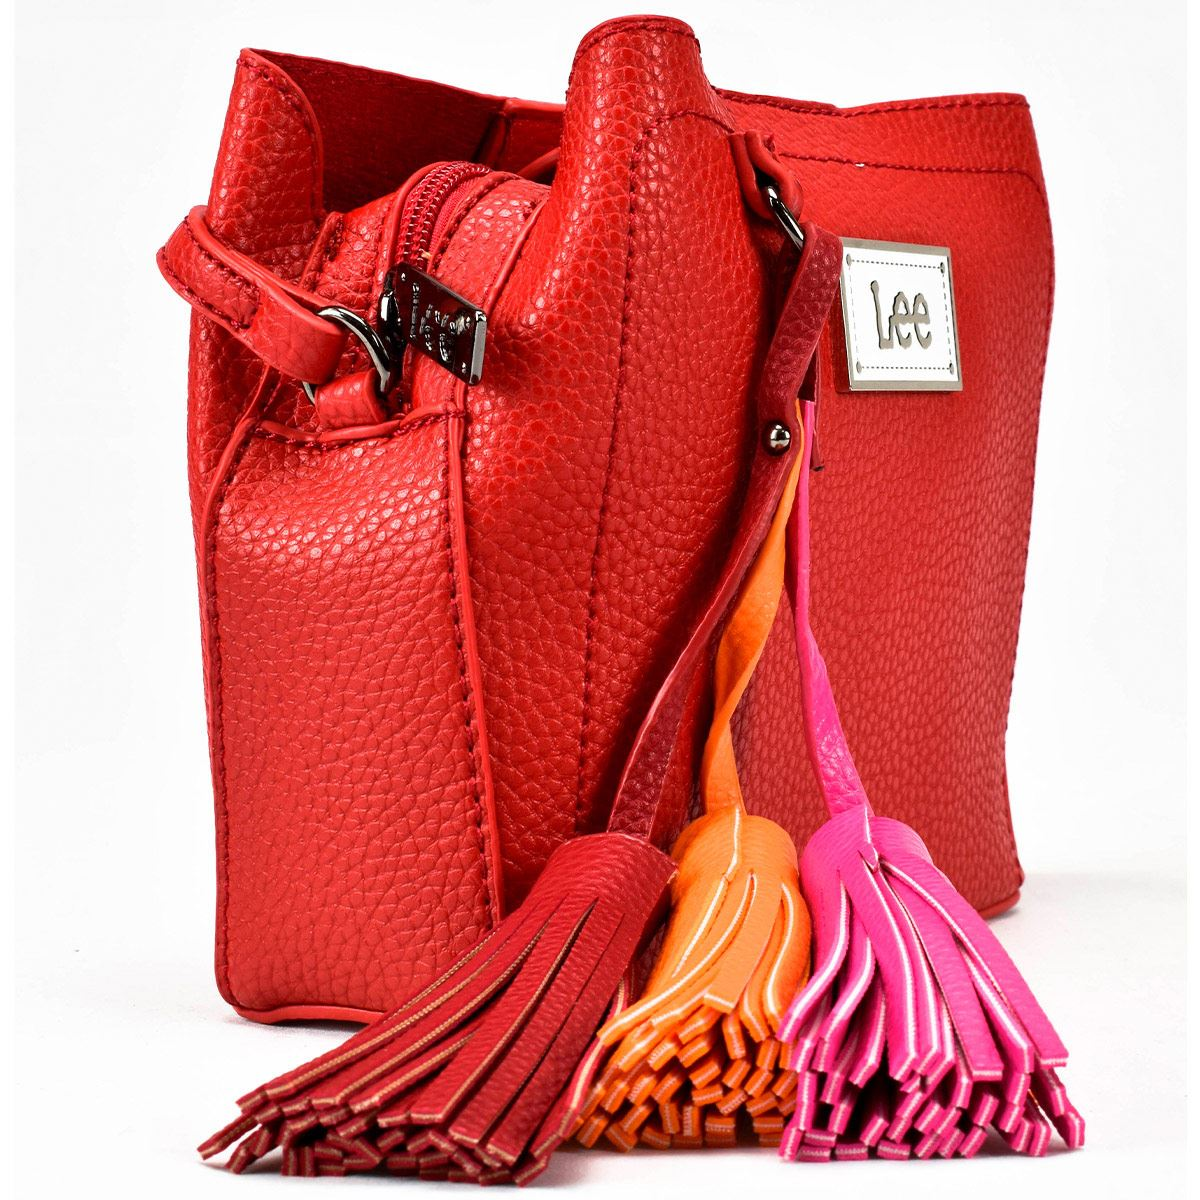 Bolso Bucket Lee Color Rojo Modelo A01963